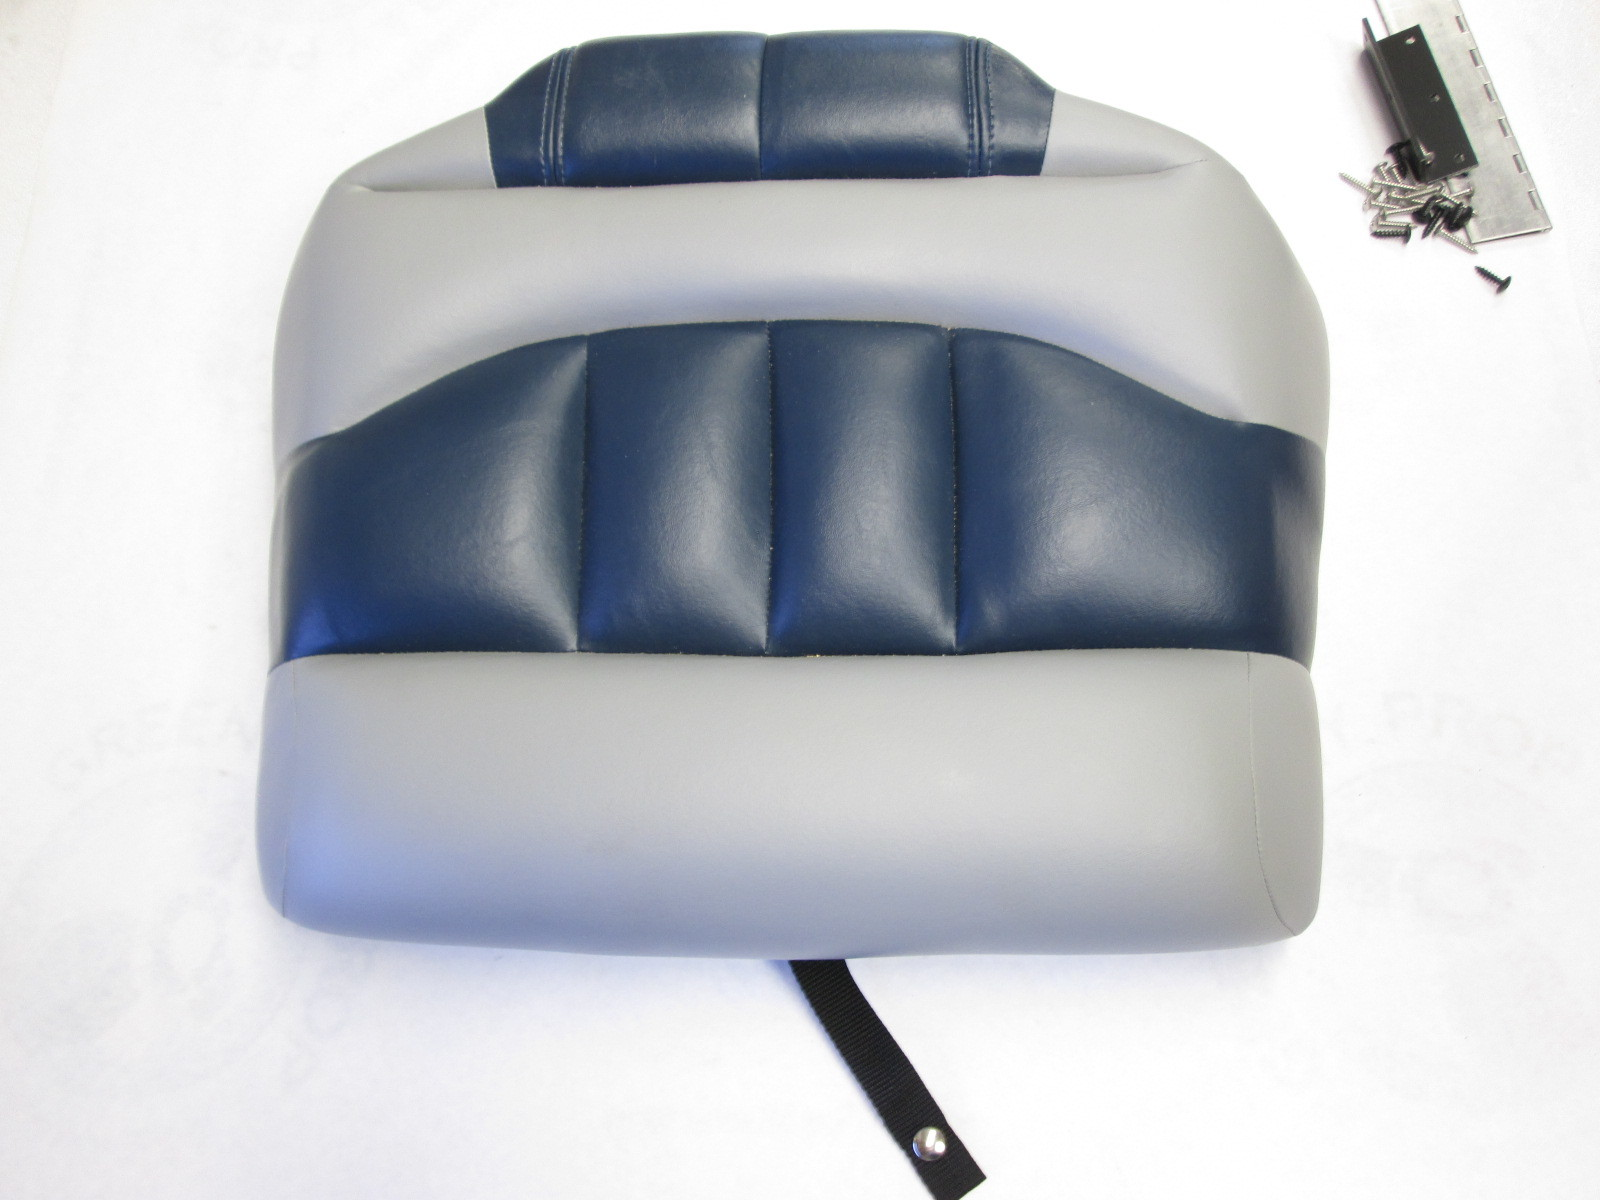 Boat Cushions On Ebay picture on Boat Cushions On Ebay400984990531 with Boat Cushions On Ebay, sofa 5e824c678ddaeb3d3d57fe541d977324